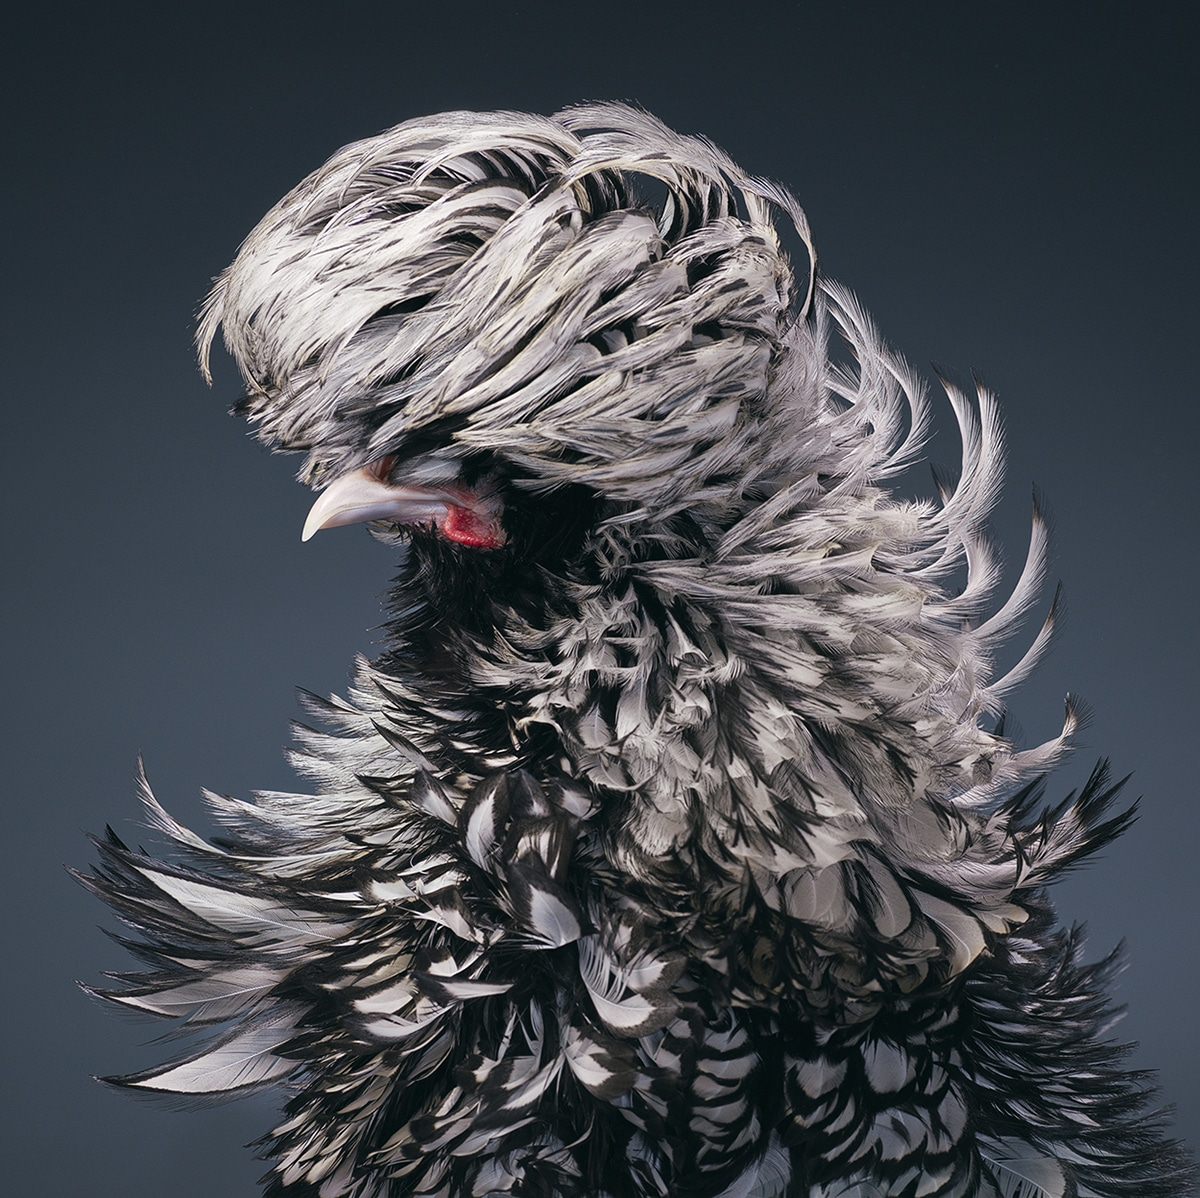 Polish Silver-Laced Frizzle Rooster Tim Flach Bird Photography